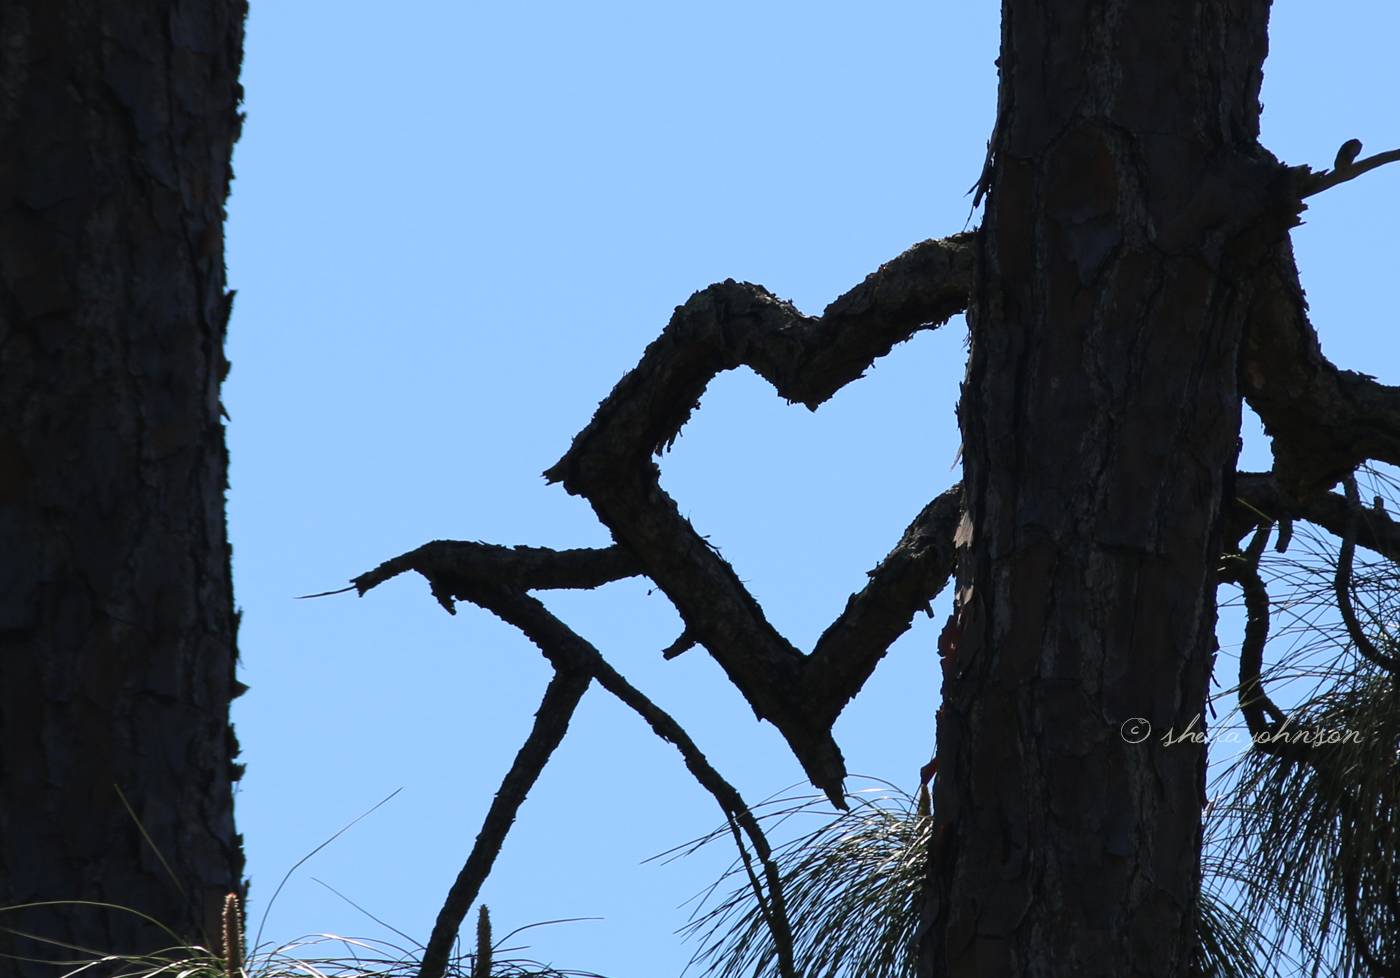 How does this happen? So many elements in nature can change the appearance of a tree, but, seriously, how does a tree branch or combination of tree branches twist themselves into the shape of a heart?